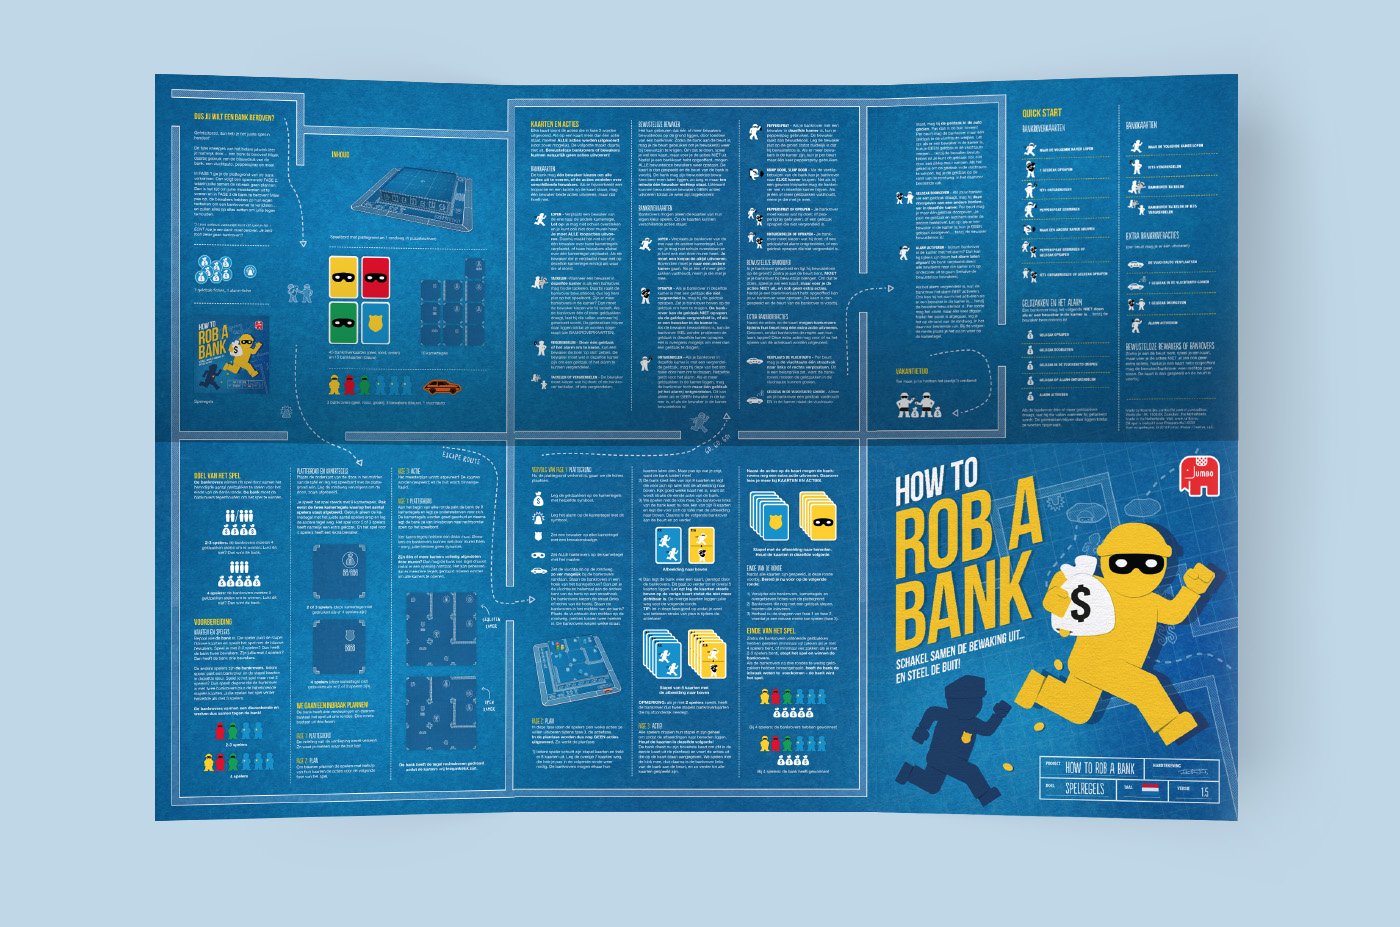 How-to-rob-a-bank-gamerules2-jumbo-games-mandy-cobussen-graphic-design